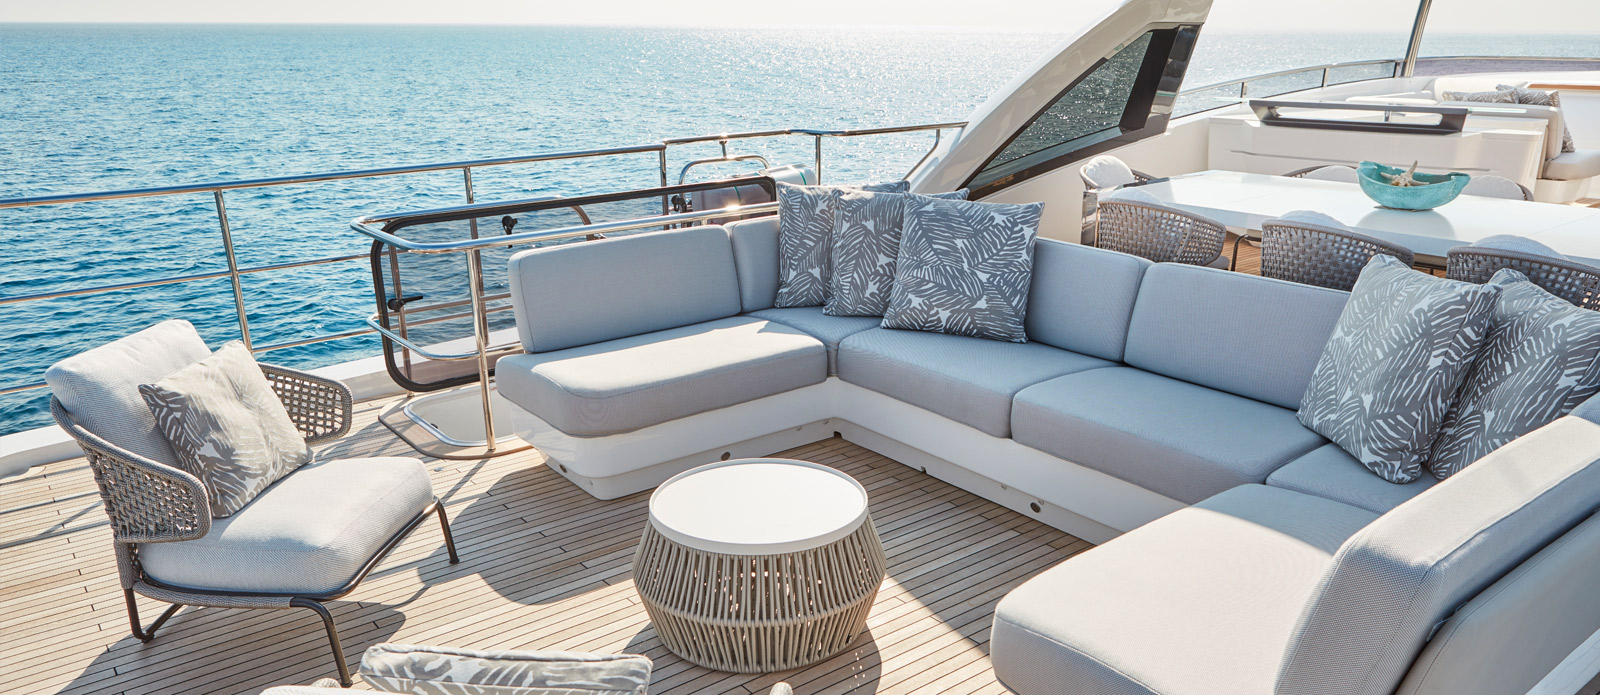 Princess 30 Metre Yacht Bandazul - Flybridge Custom Seating